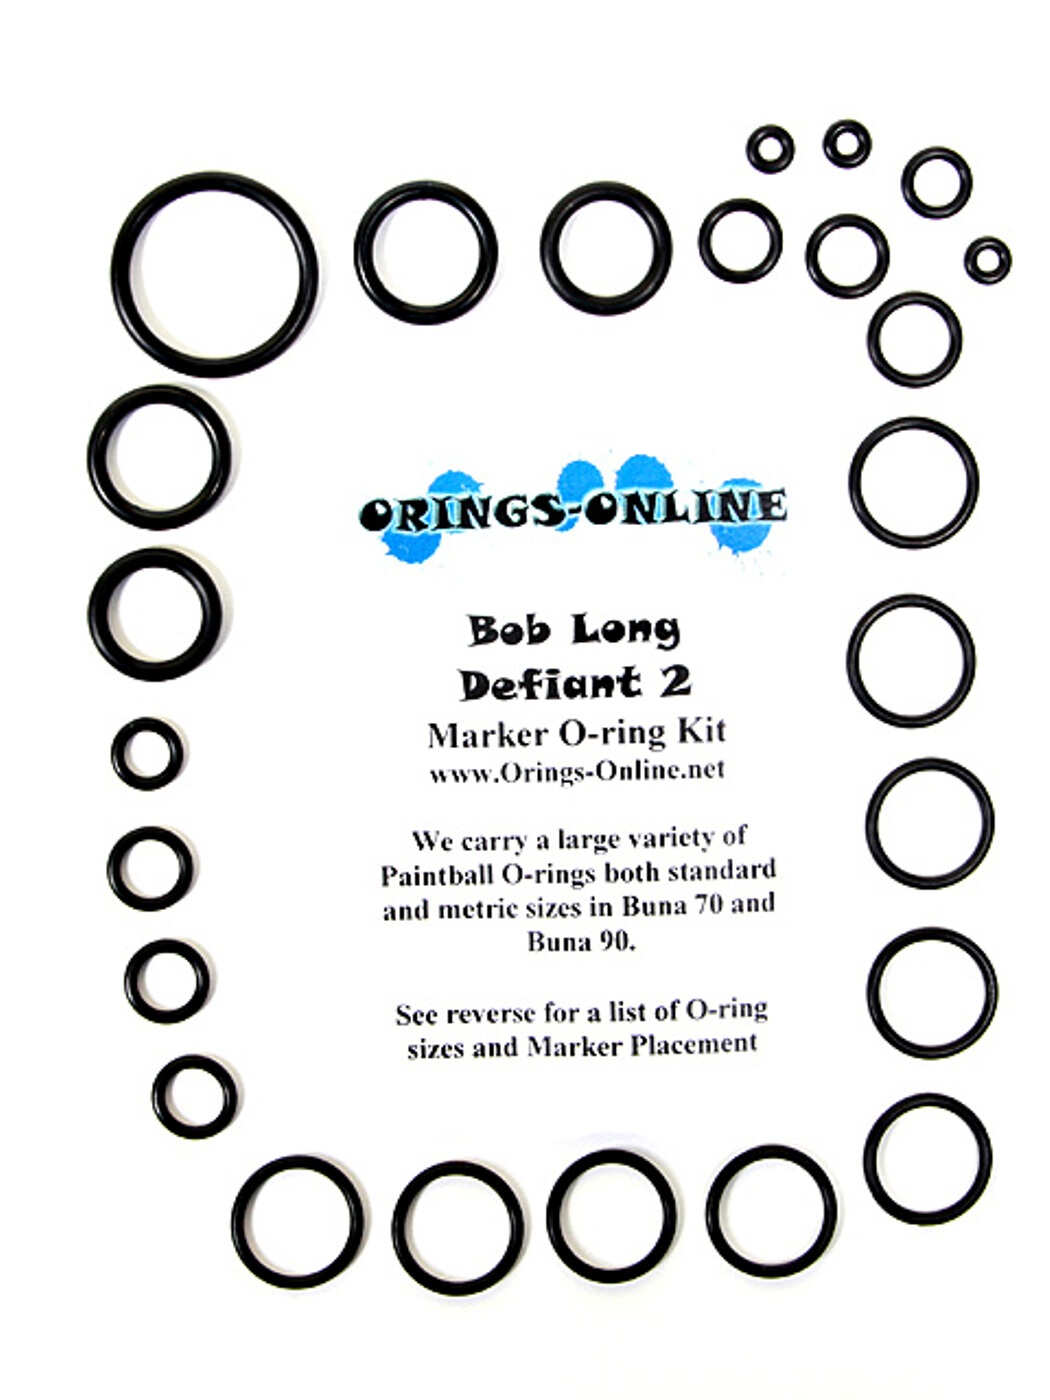 Bob Long Defiant 2 Marker O-ring Kit